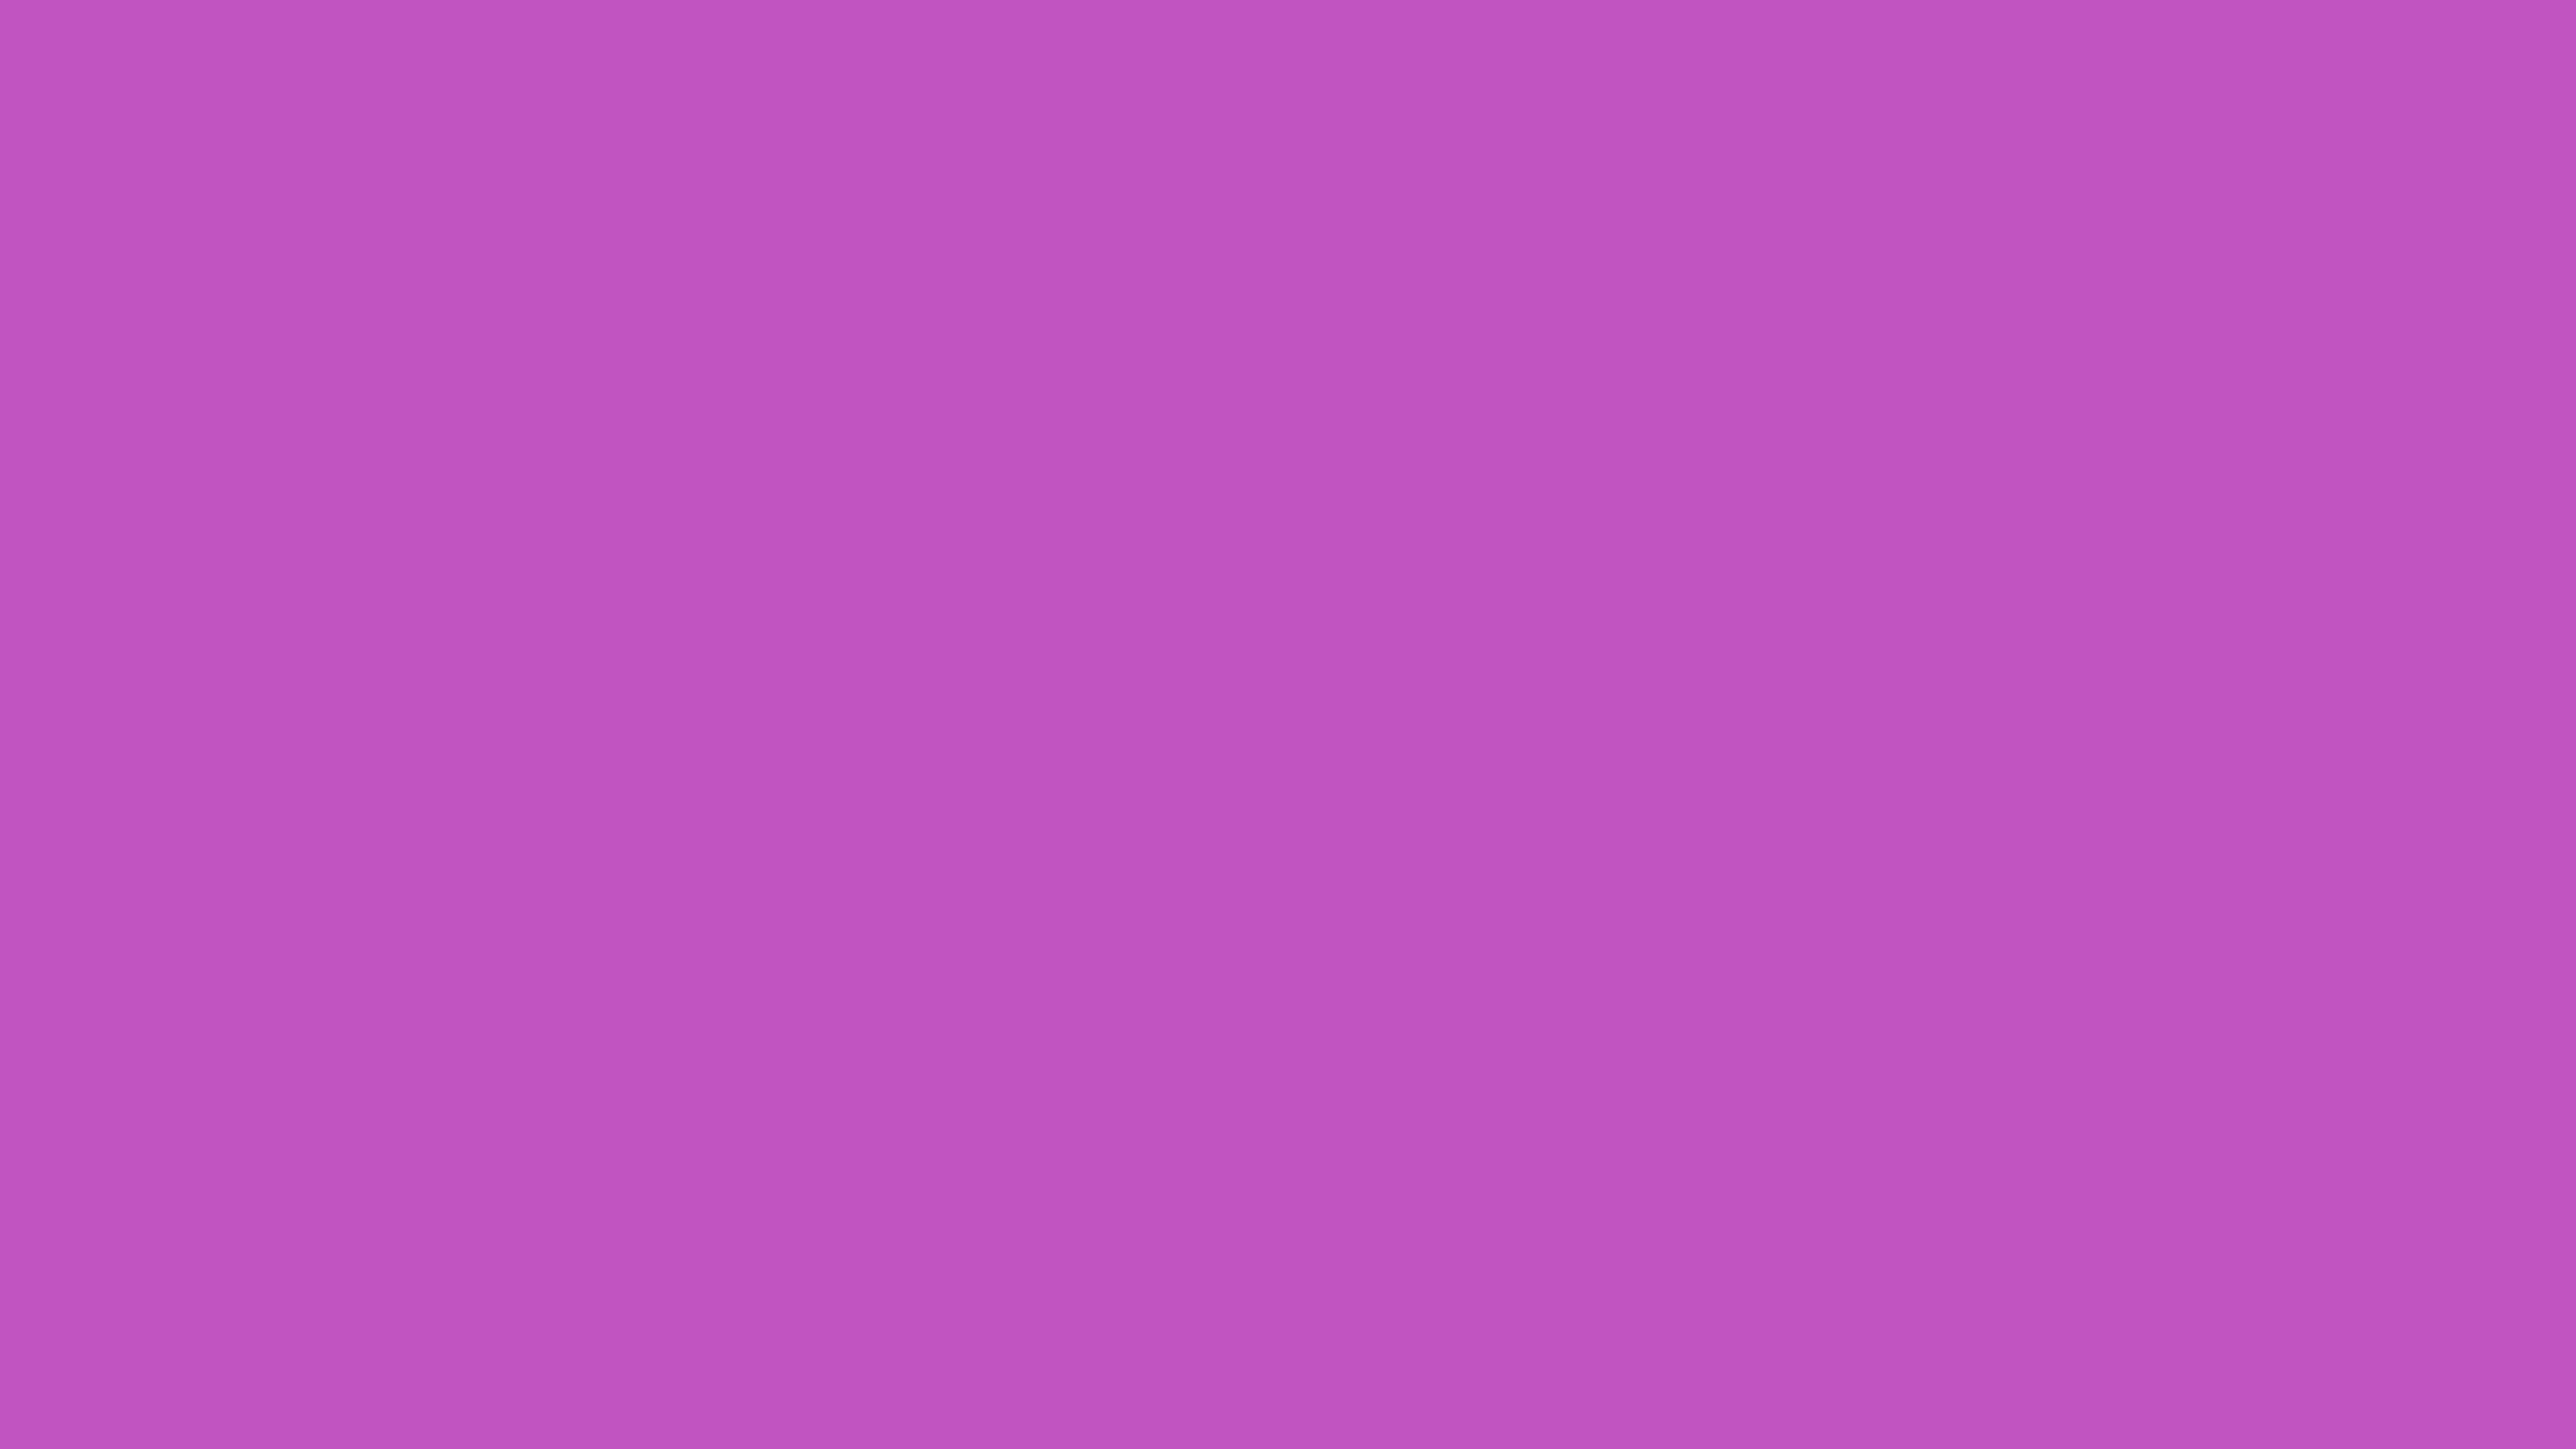 3840x2160 Deep Fuchsia Solid Color Background